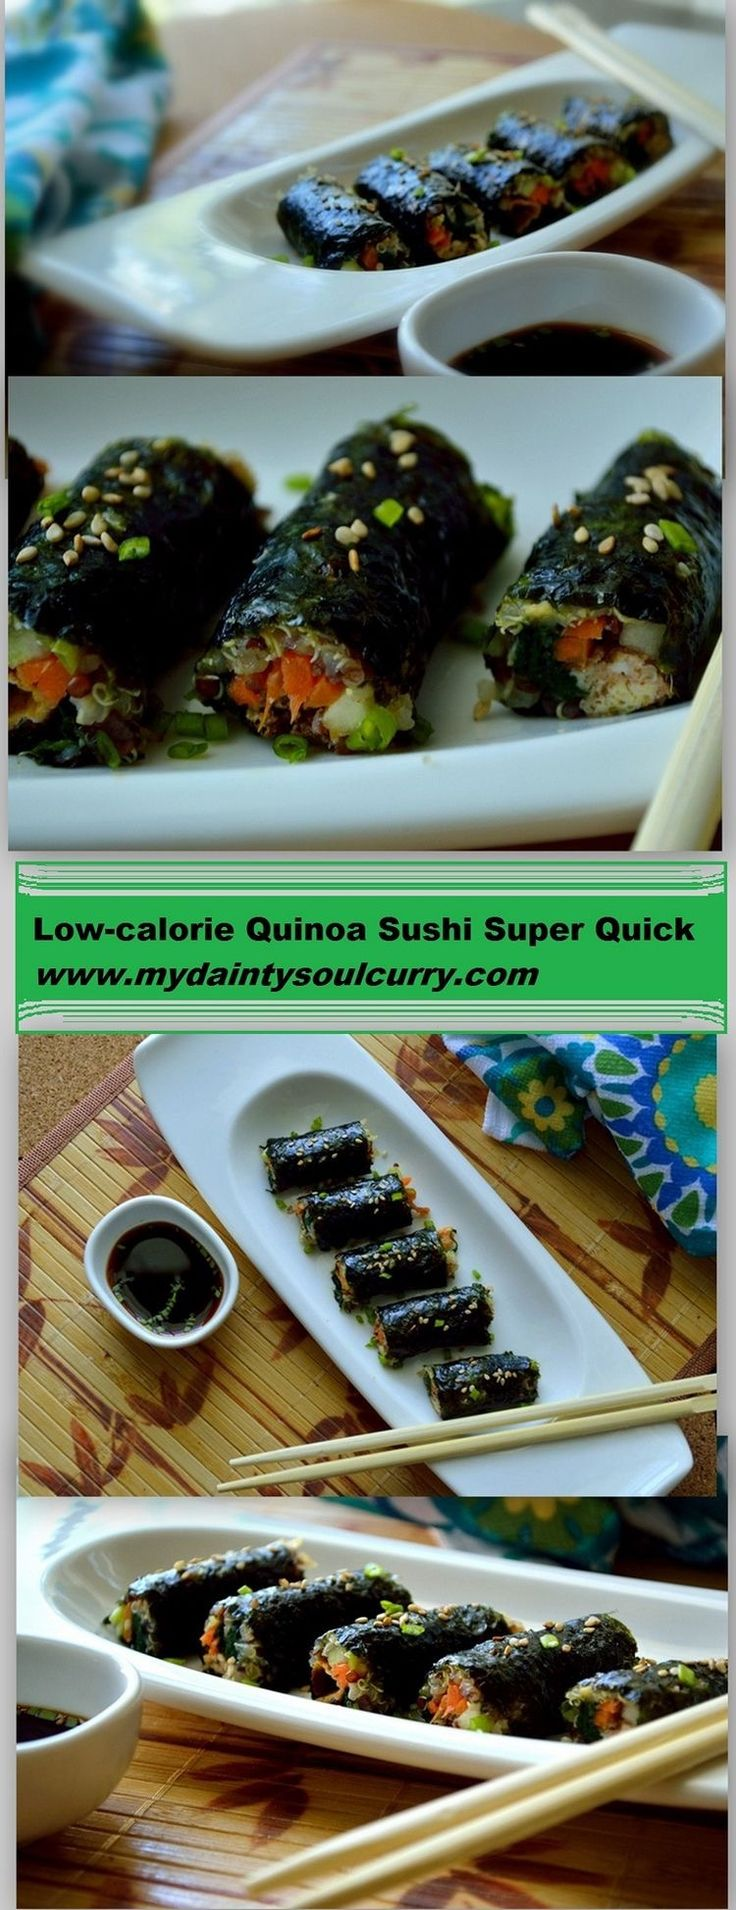 Quinoa sushi mini rolls perfect for sushi cravings and healthy eating..